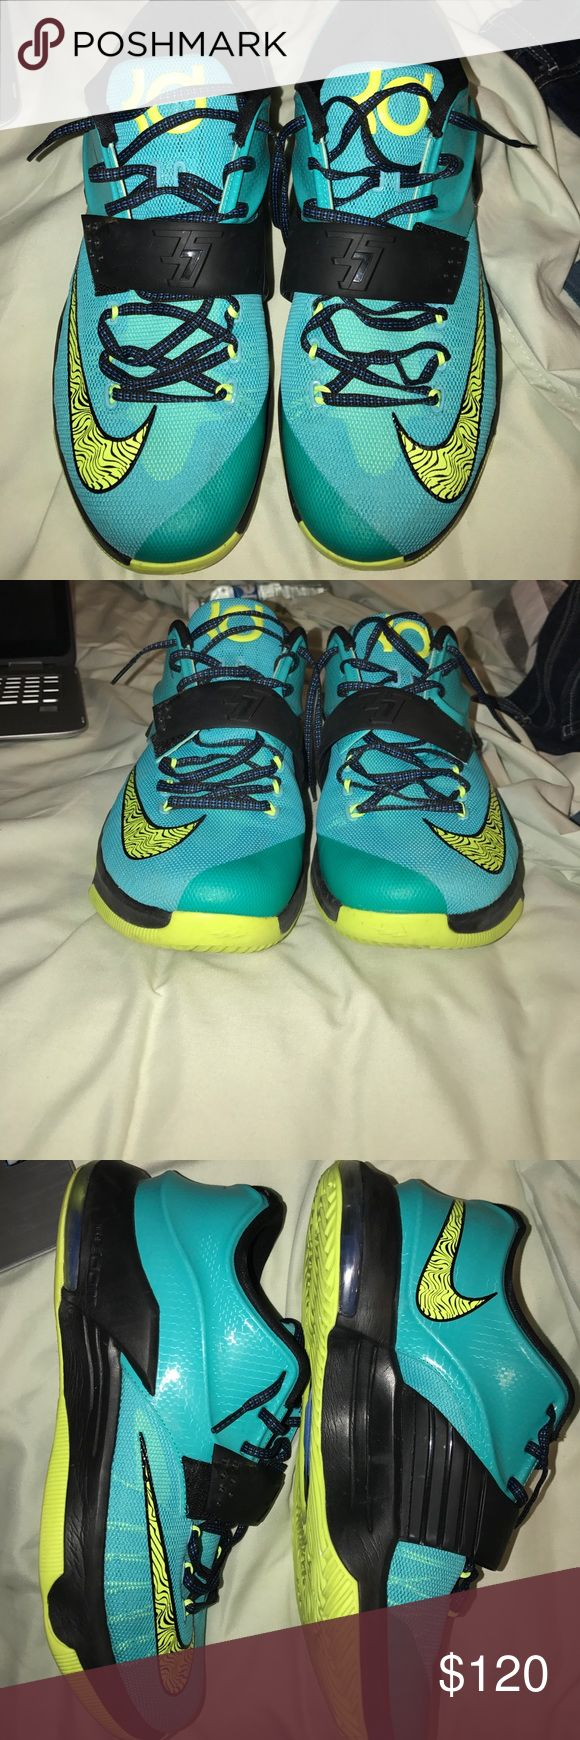 Kevin Durant 7s, KD 7s Kevin Durant 7's, only worn a few times. Sorry don't have the box, but shoes are in great condition with no scuffs or creases. Willing to negotiate on price so feel free to offer anything reasonable. Nike Shoes Athletic Shoes